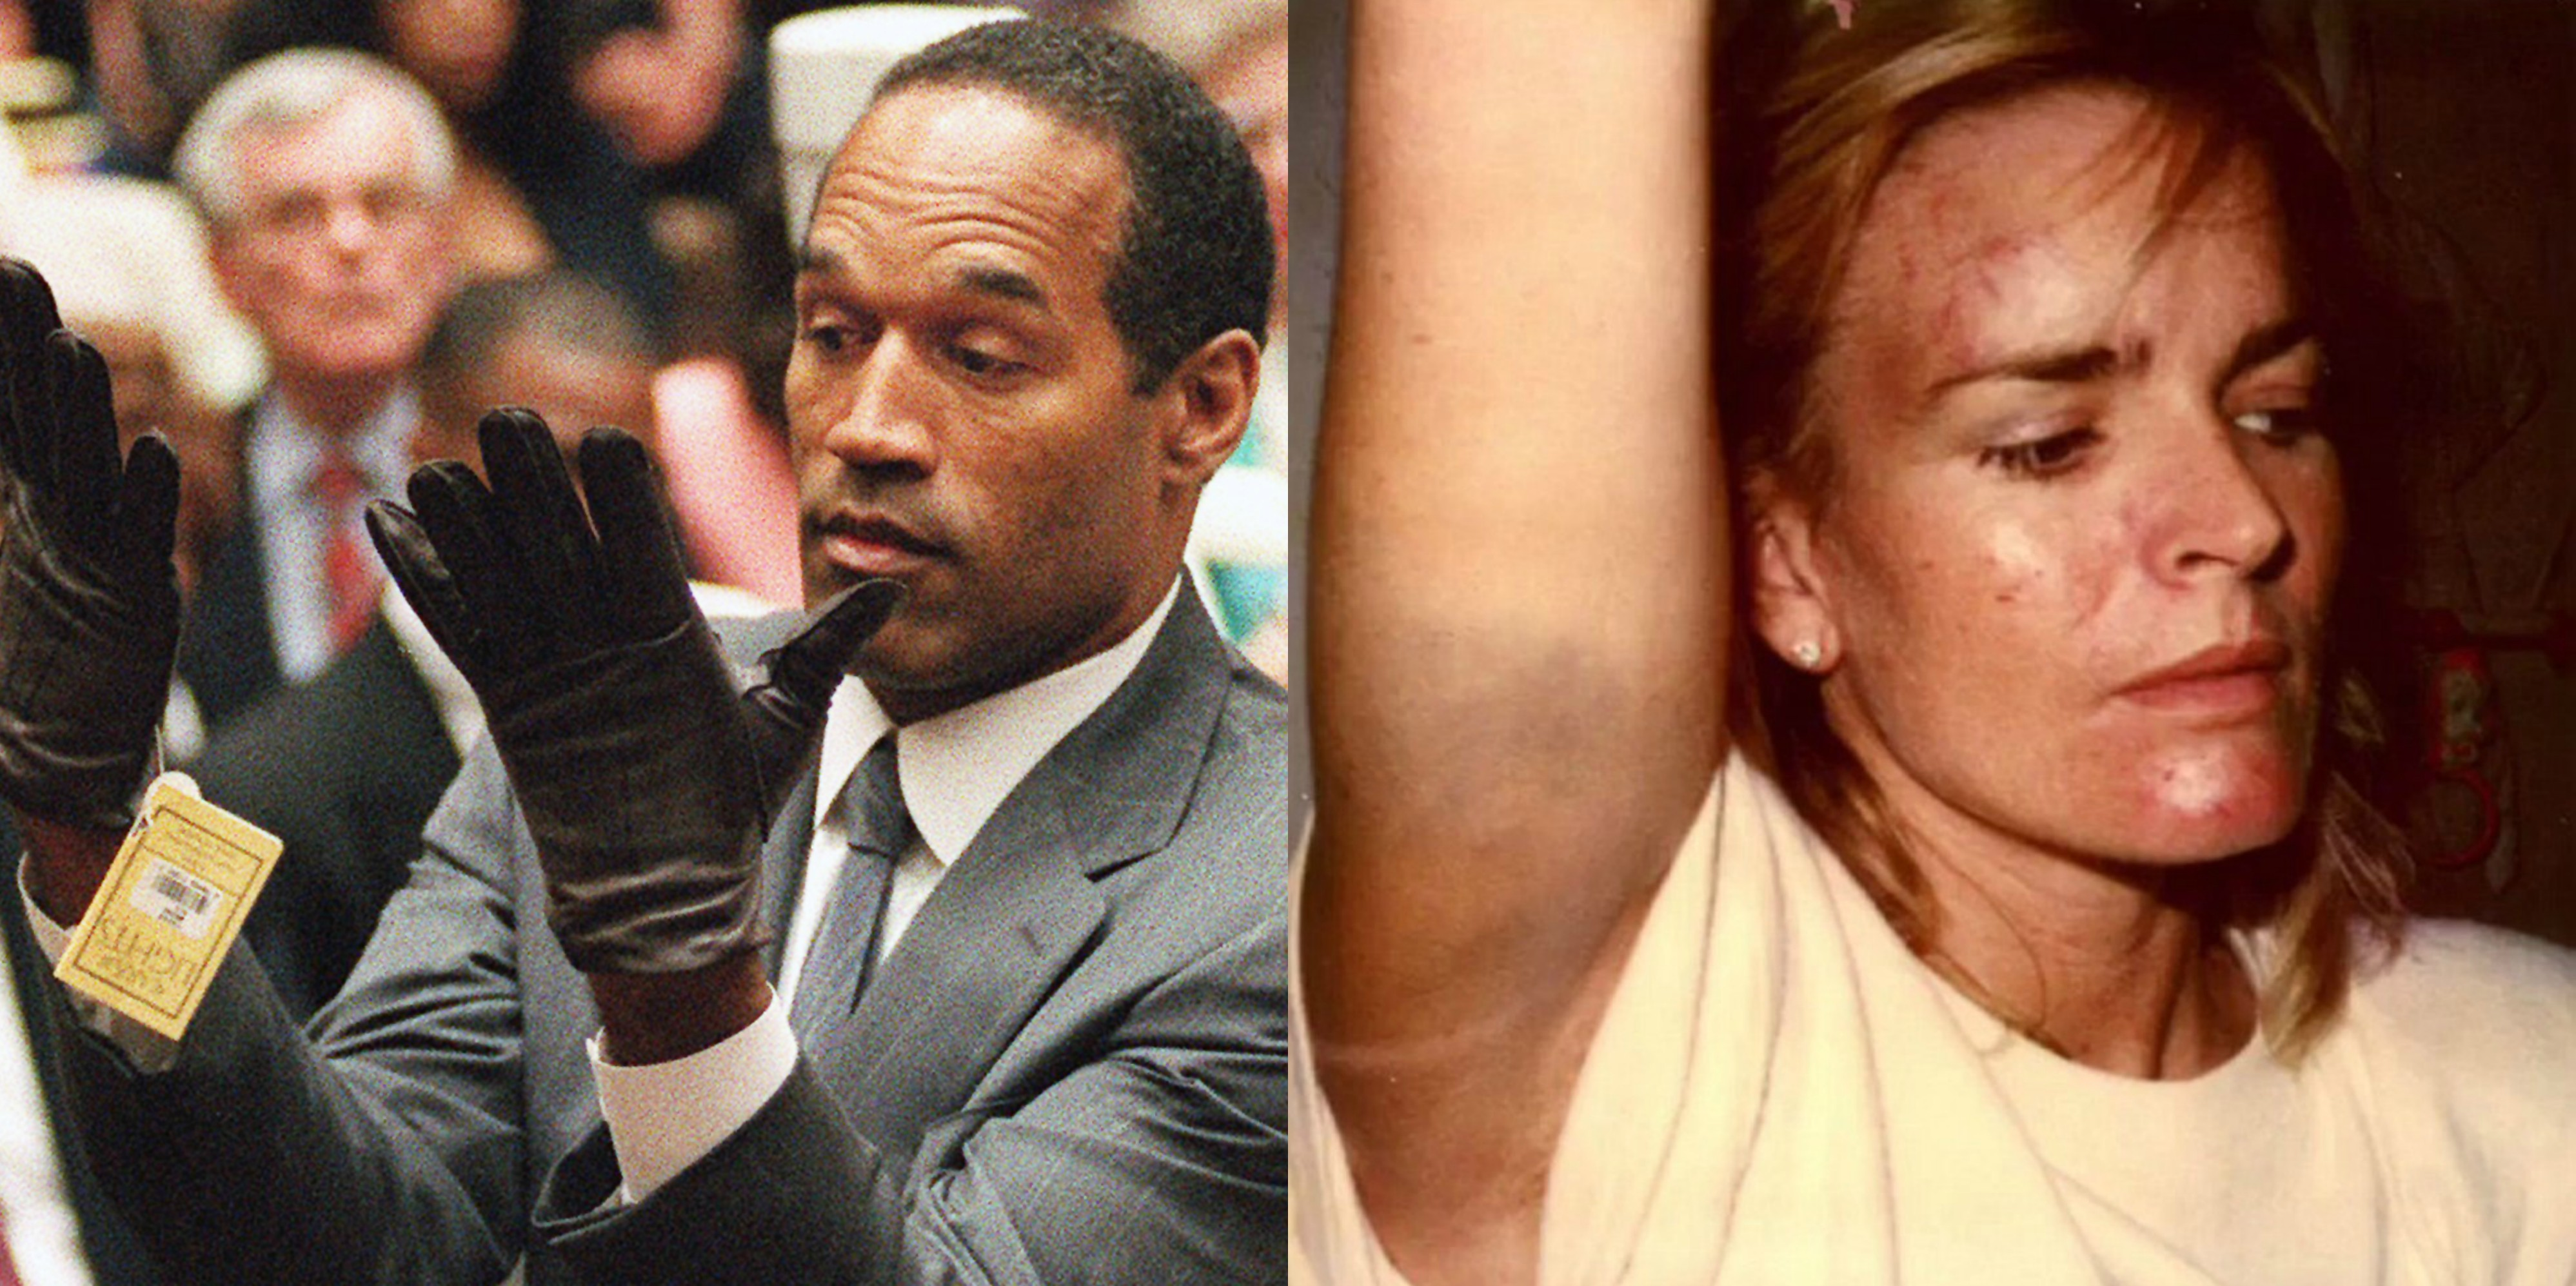 oj simpson trial essay Race and its effect on the oj simpson trial 1 running header: race and its effect on the oj simpson trial race and its effect on the oj simpson trial.